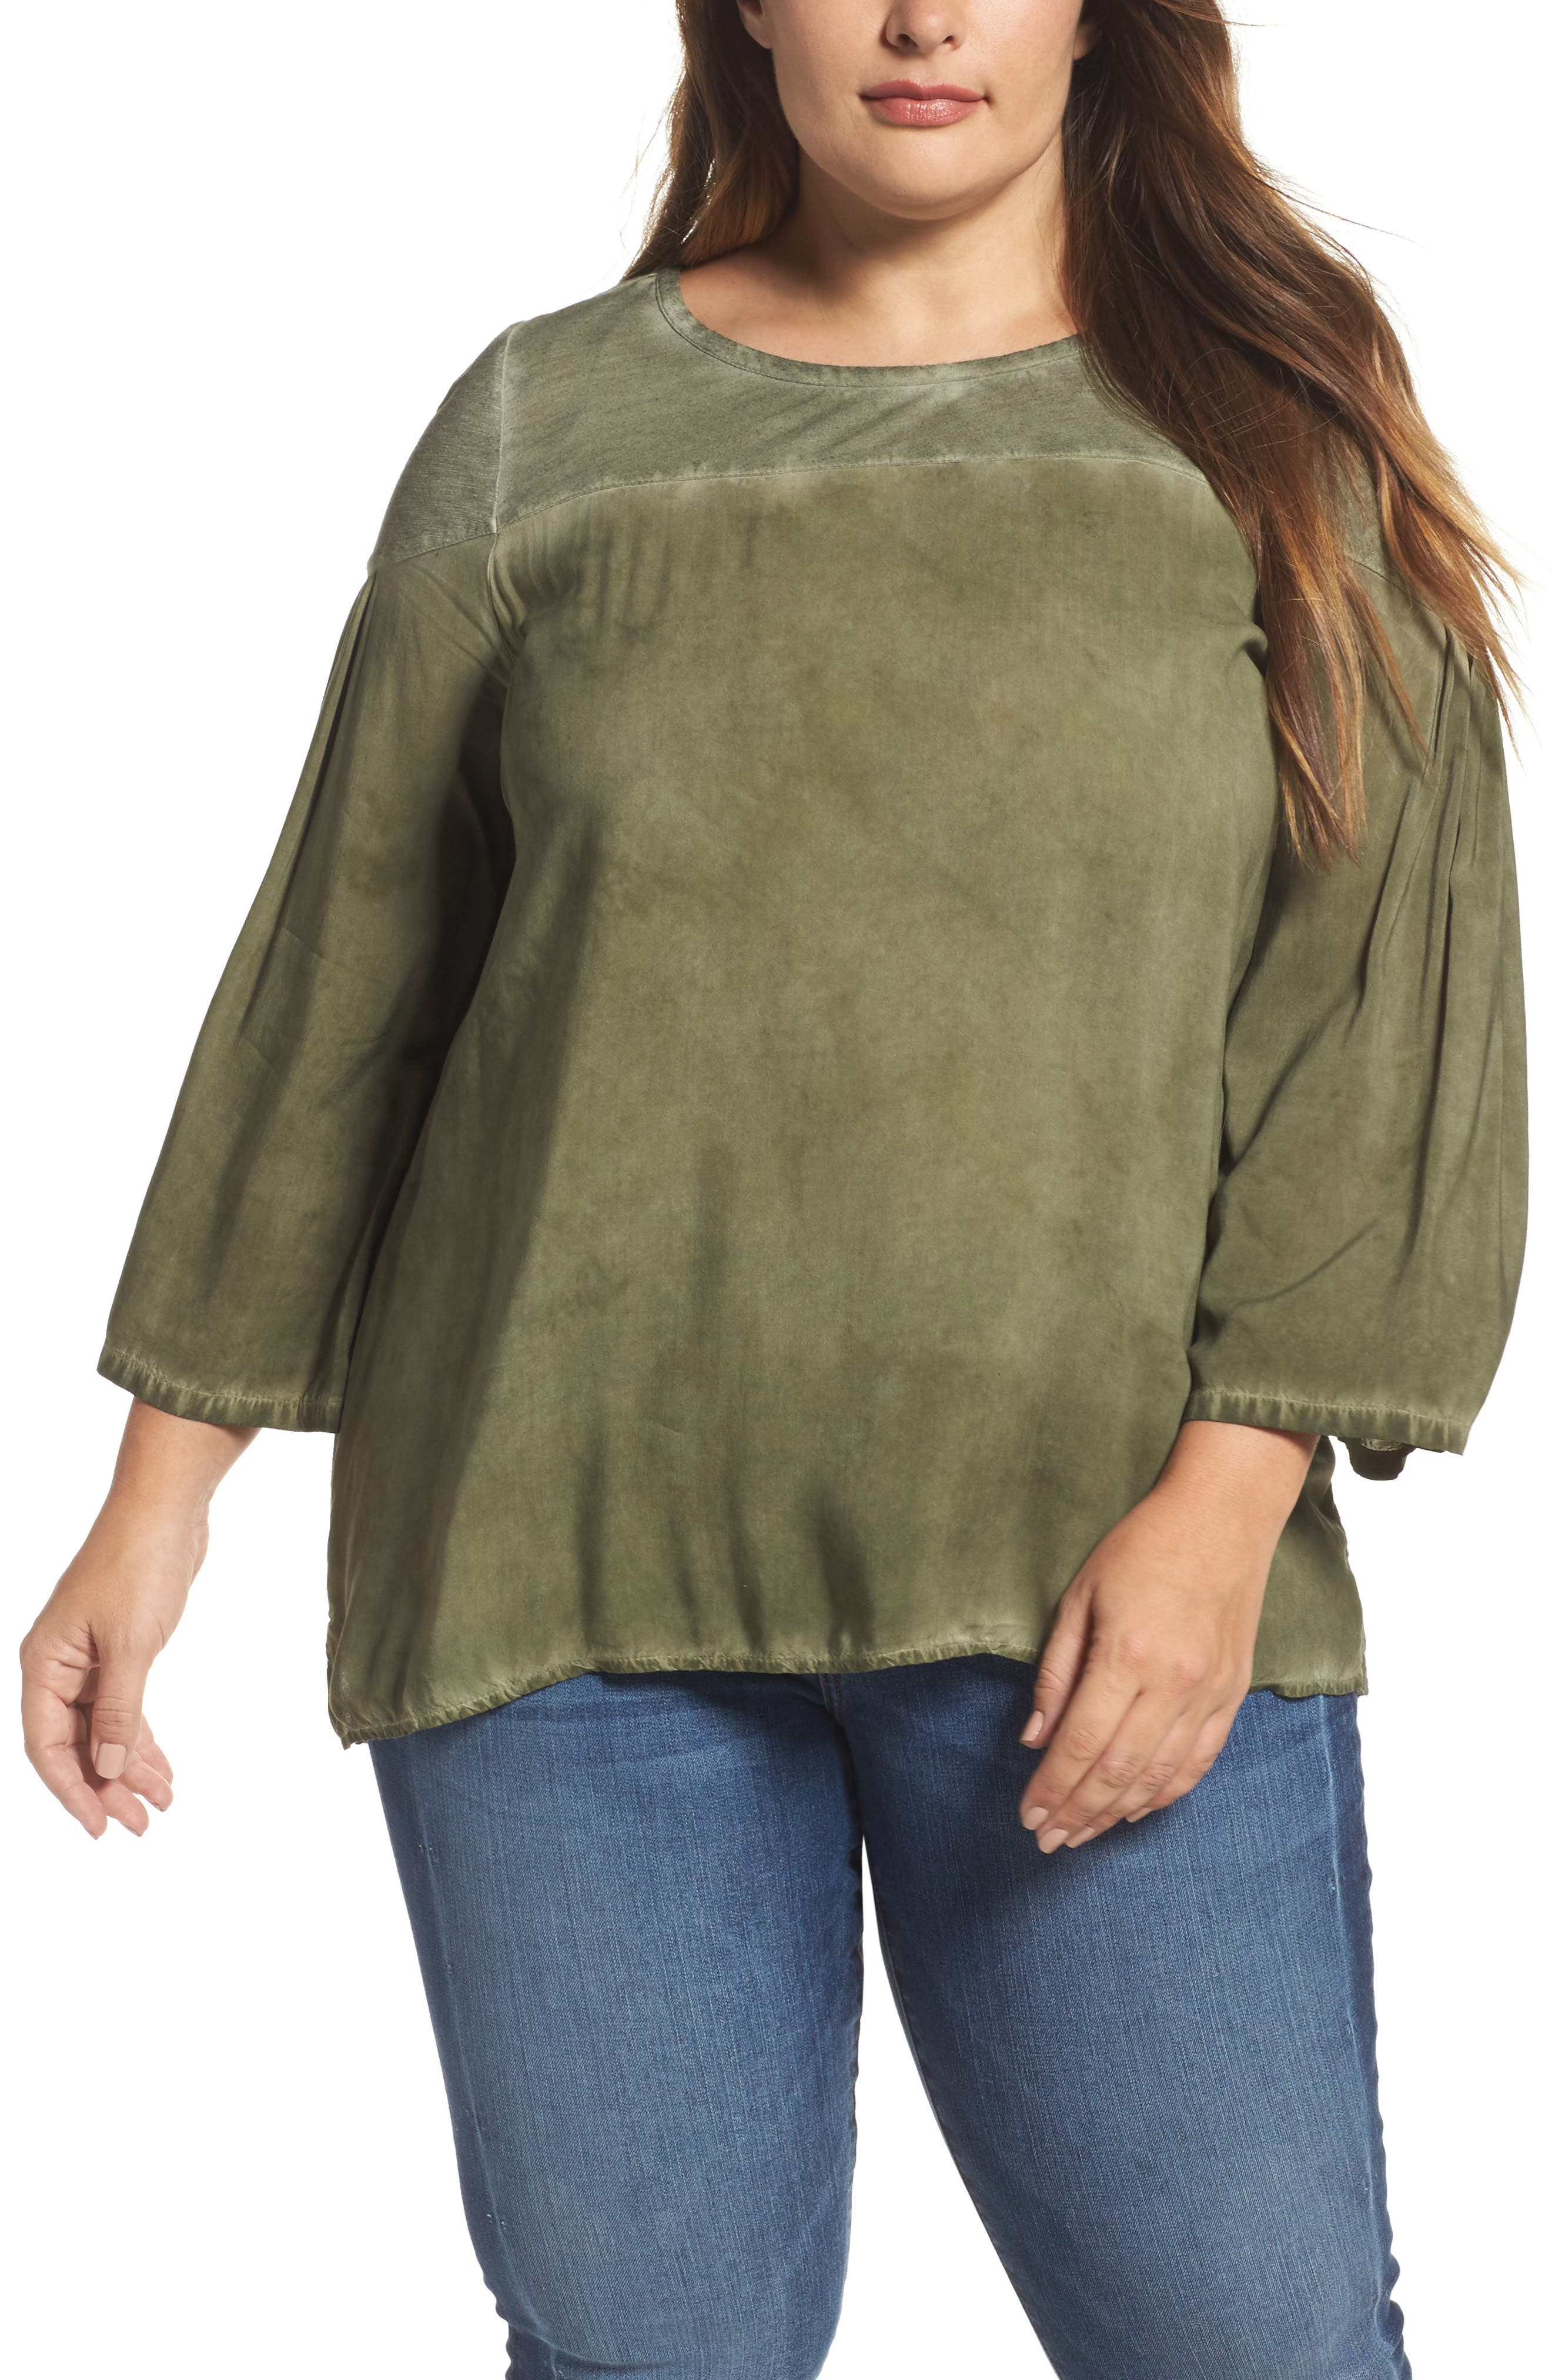 Alternate Image 1 Selected - Two by Vince Camuto Slubbed Garment Dyed Top